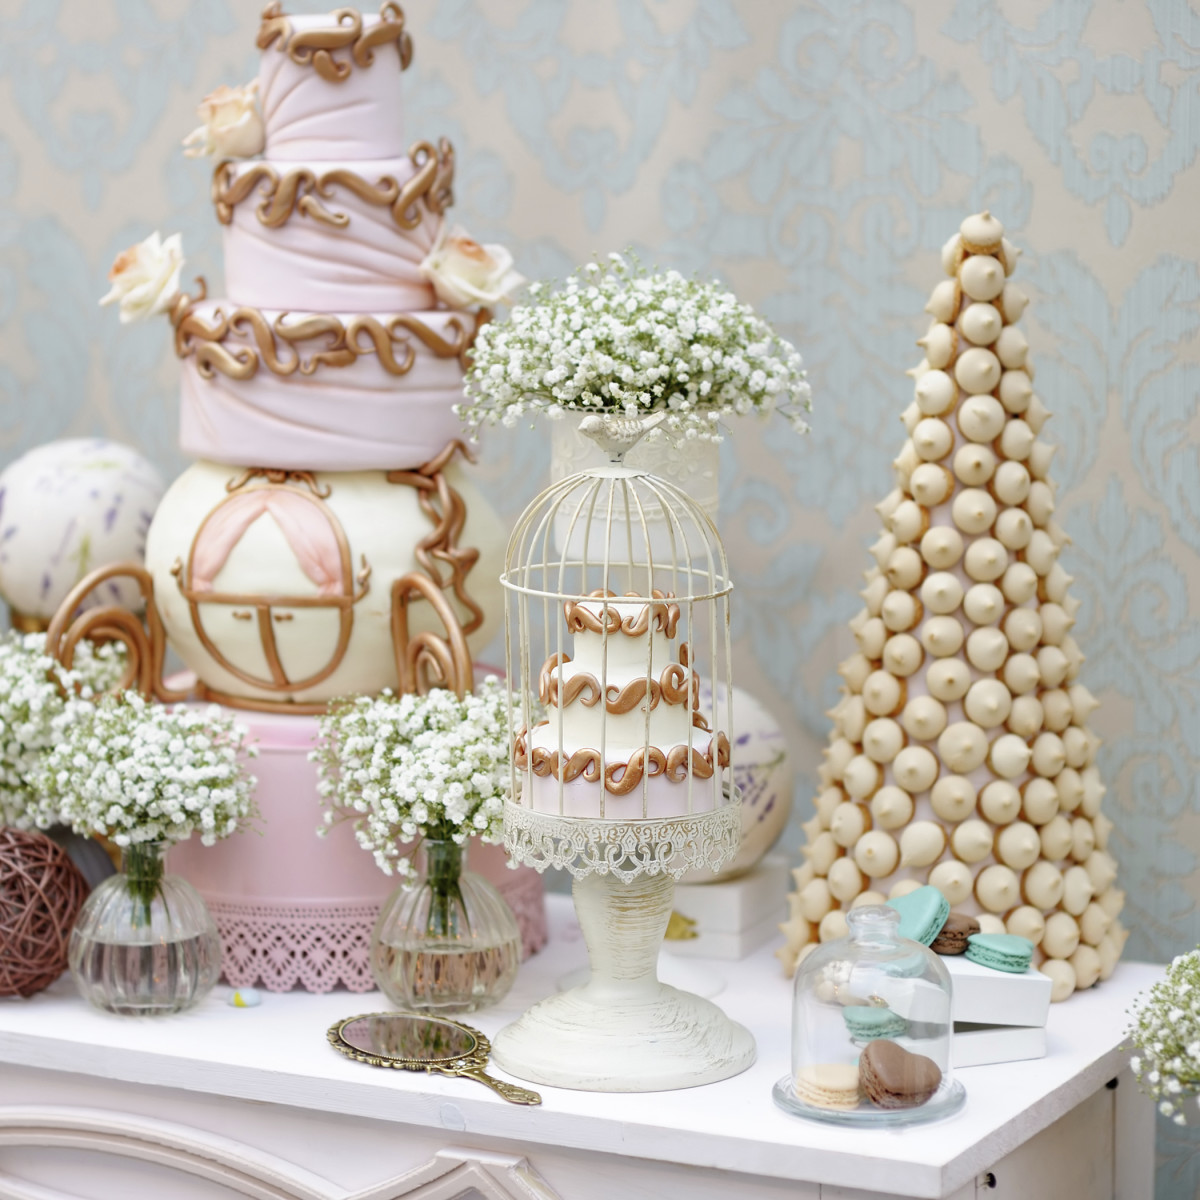 Elegant sweet table with big cake and macaroon